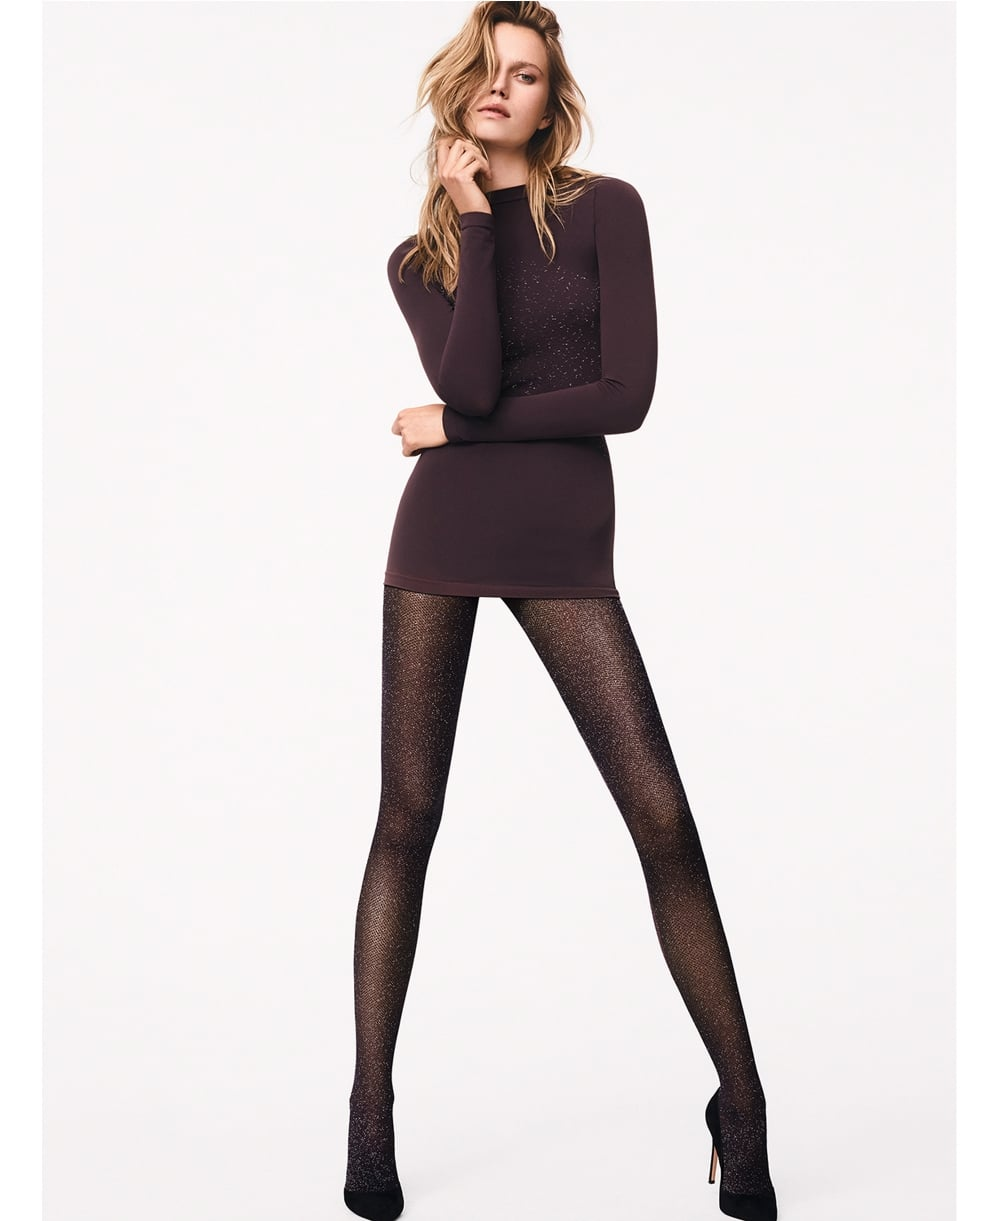 86fe6047d53 Wolford Lurex Net Tights - Tights from luxury-legs.com UK